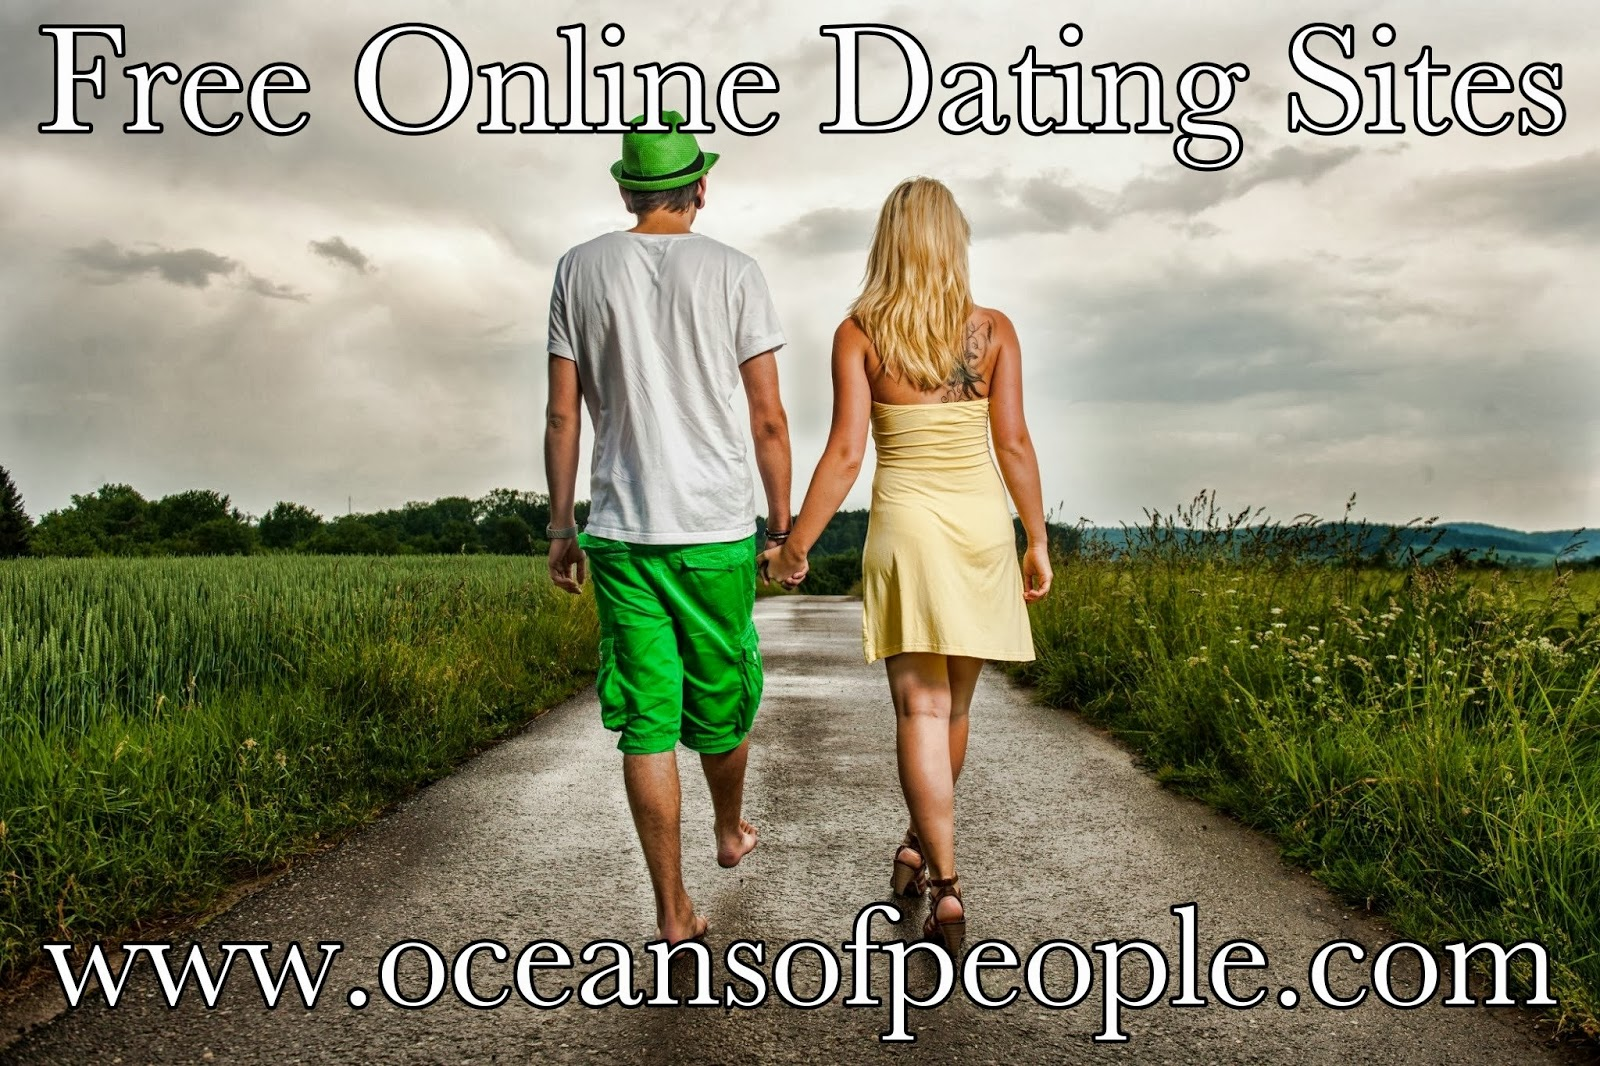 Let s take a Dating